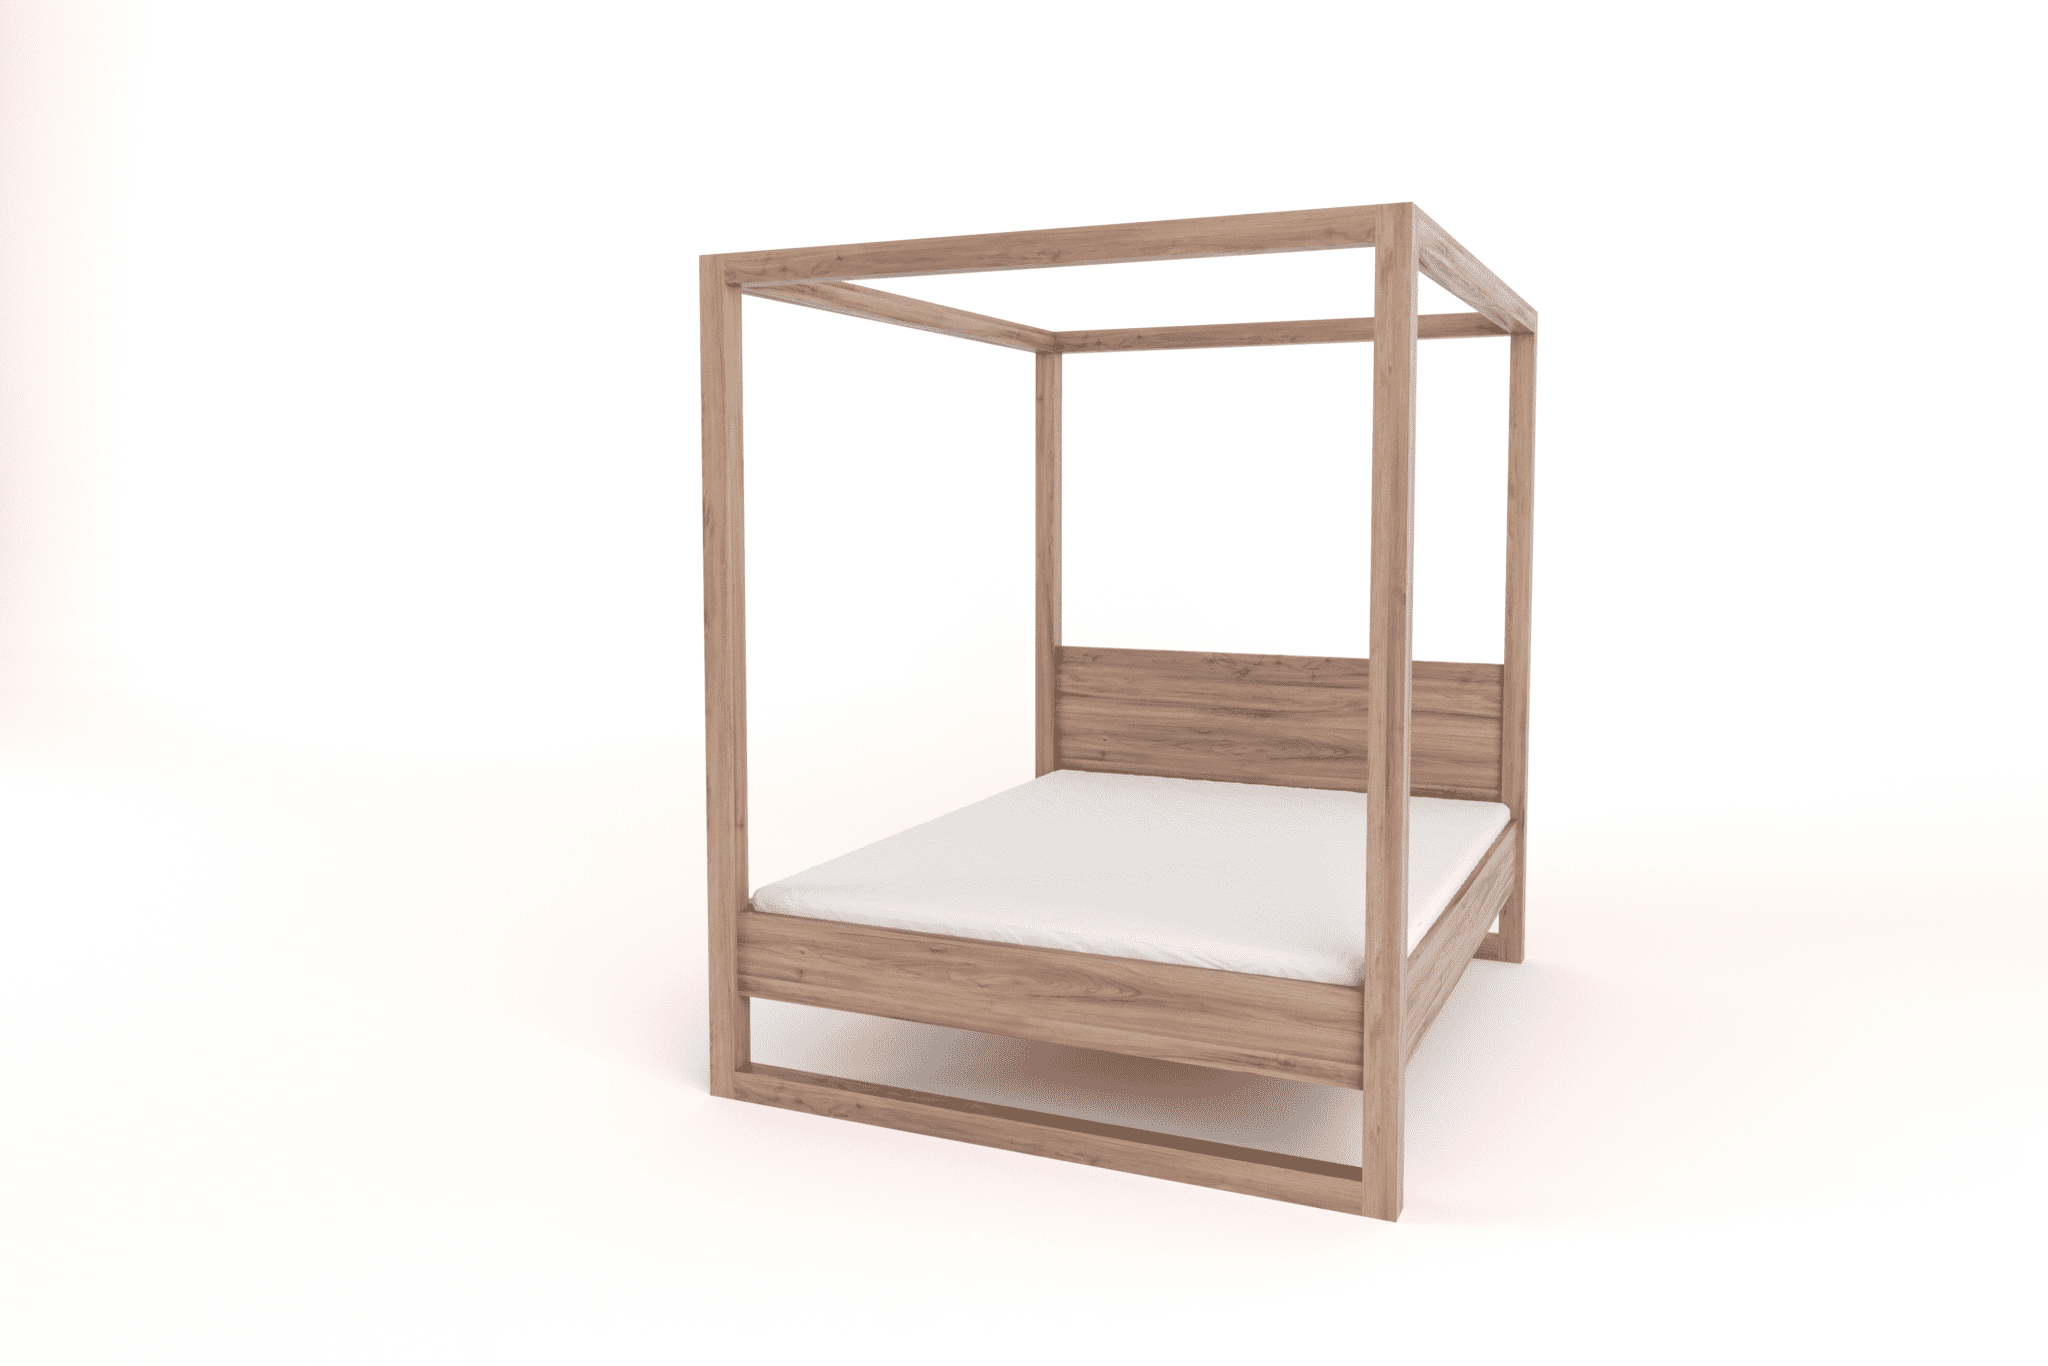 Wooden 4 poster beds for sale and custom made to order - Unique beds for sale ...